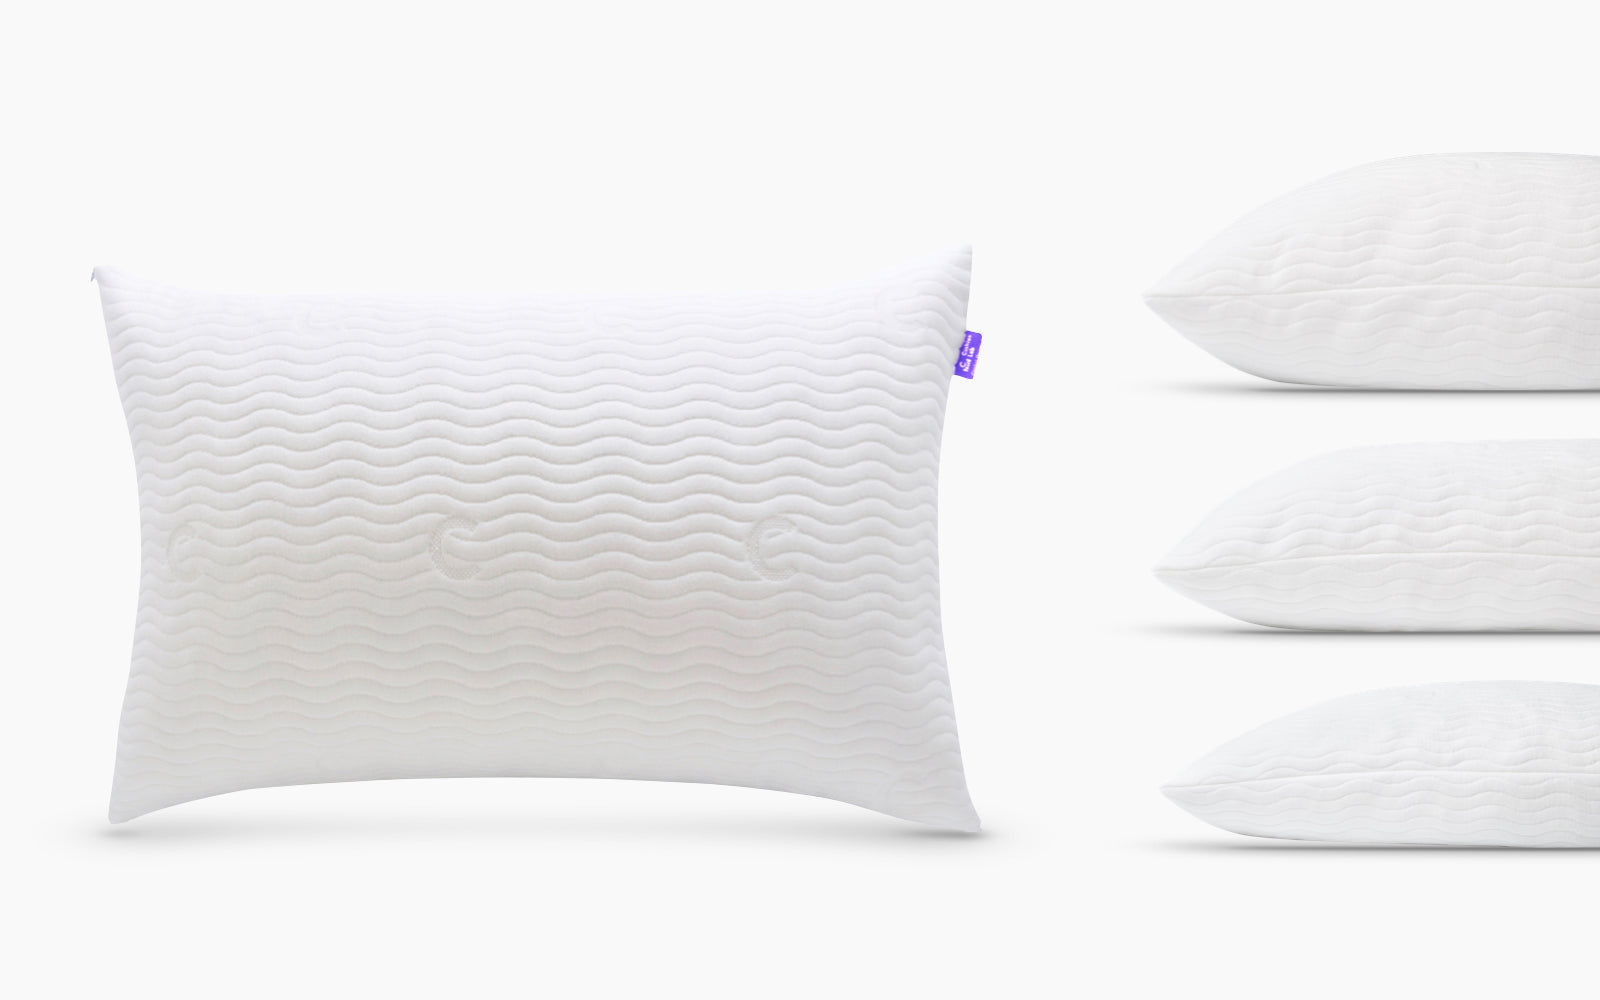 Cushion Lab Adjustable Shredded Memory Foam Pillow